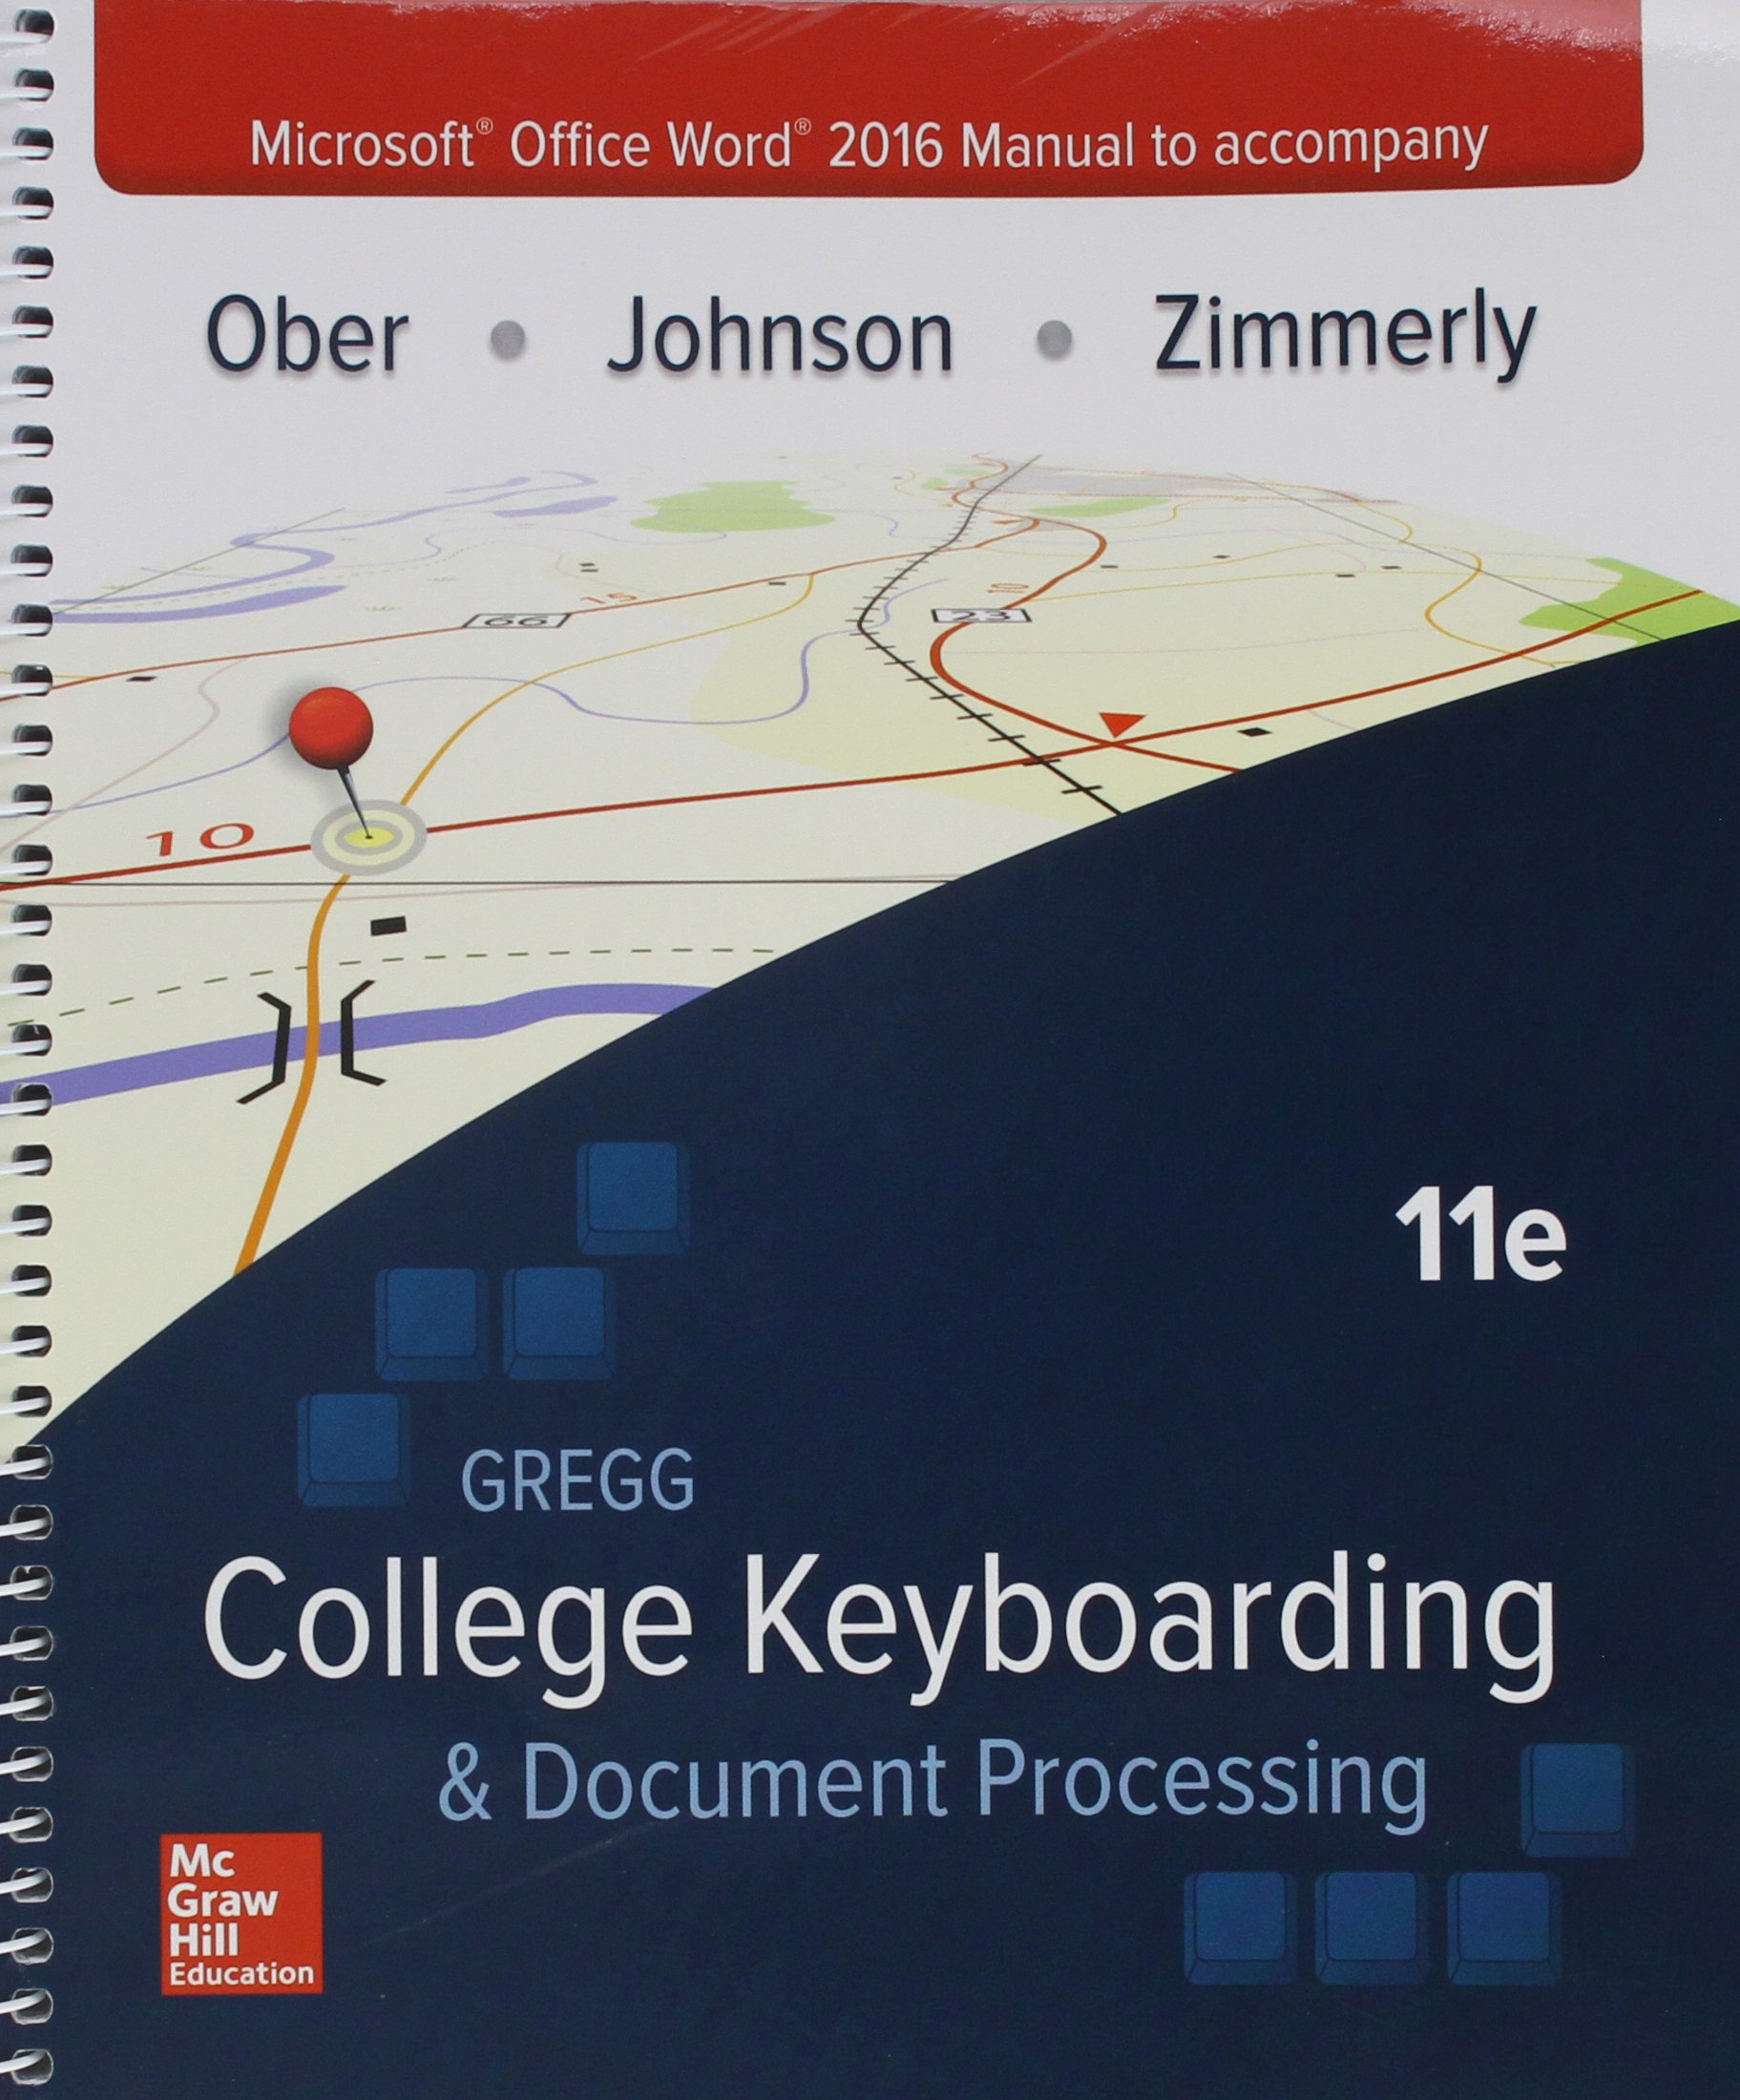 Microsoft Office Word 2016 Manual for Gregg College Keyboarding & Document  Processing (GDP): 9781259907937: Books - Amazon.ca